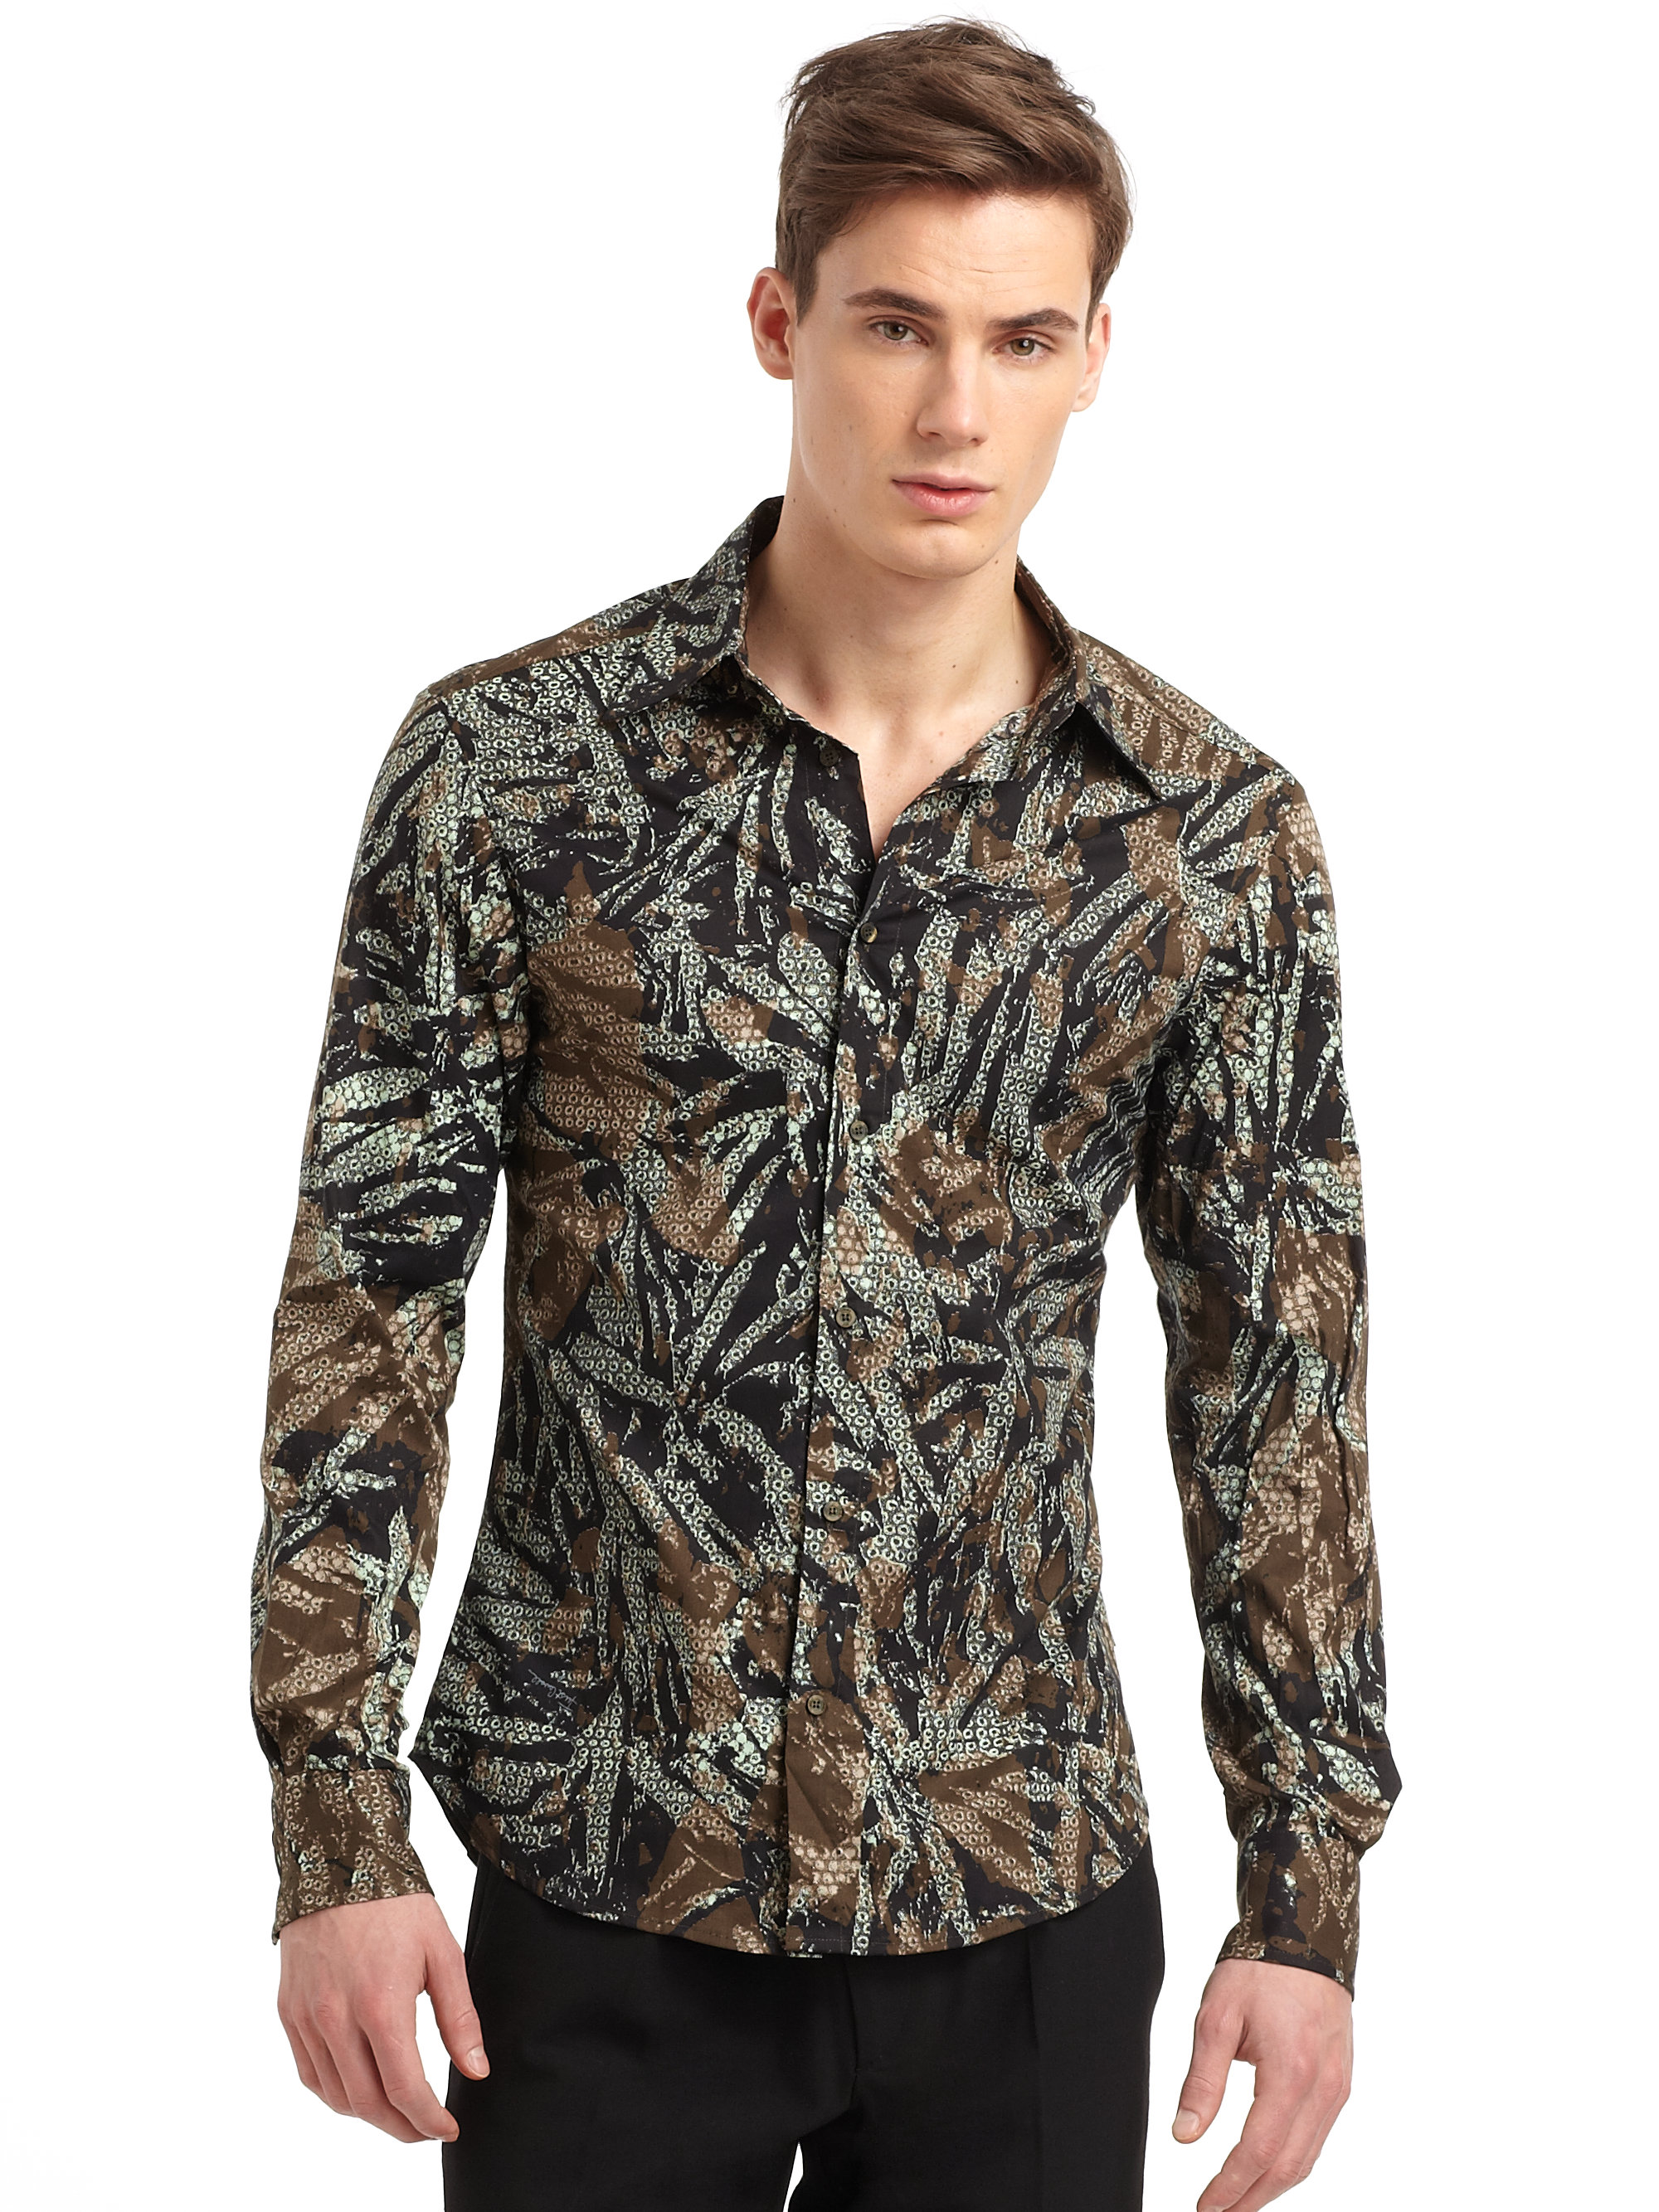 Roberto cavalli Abstract Print Dress Shirt for Men | Lyst